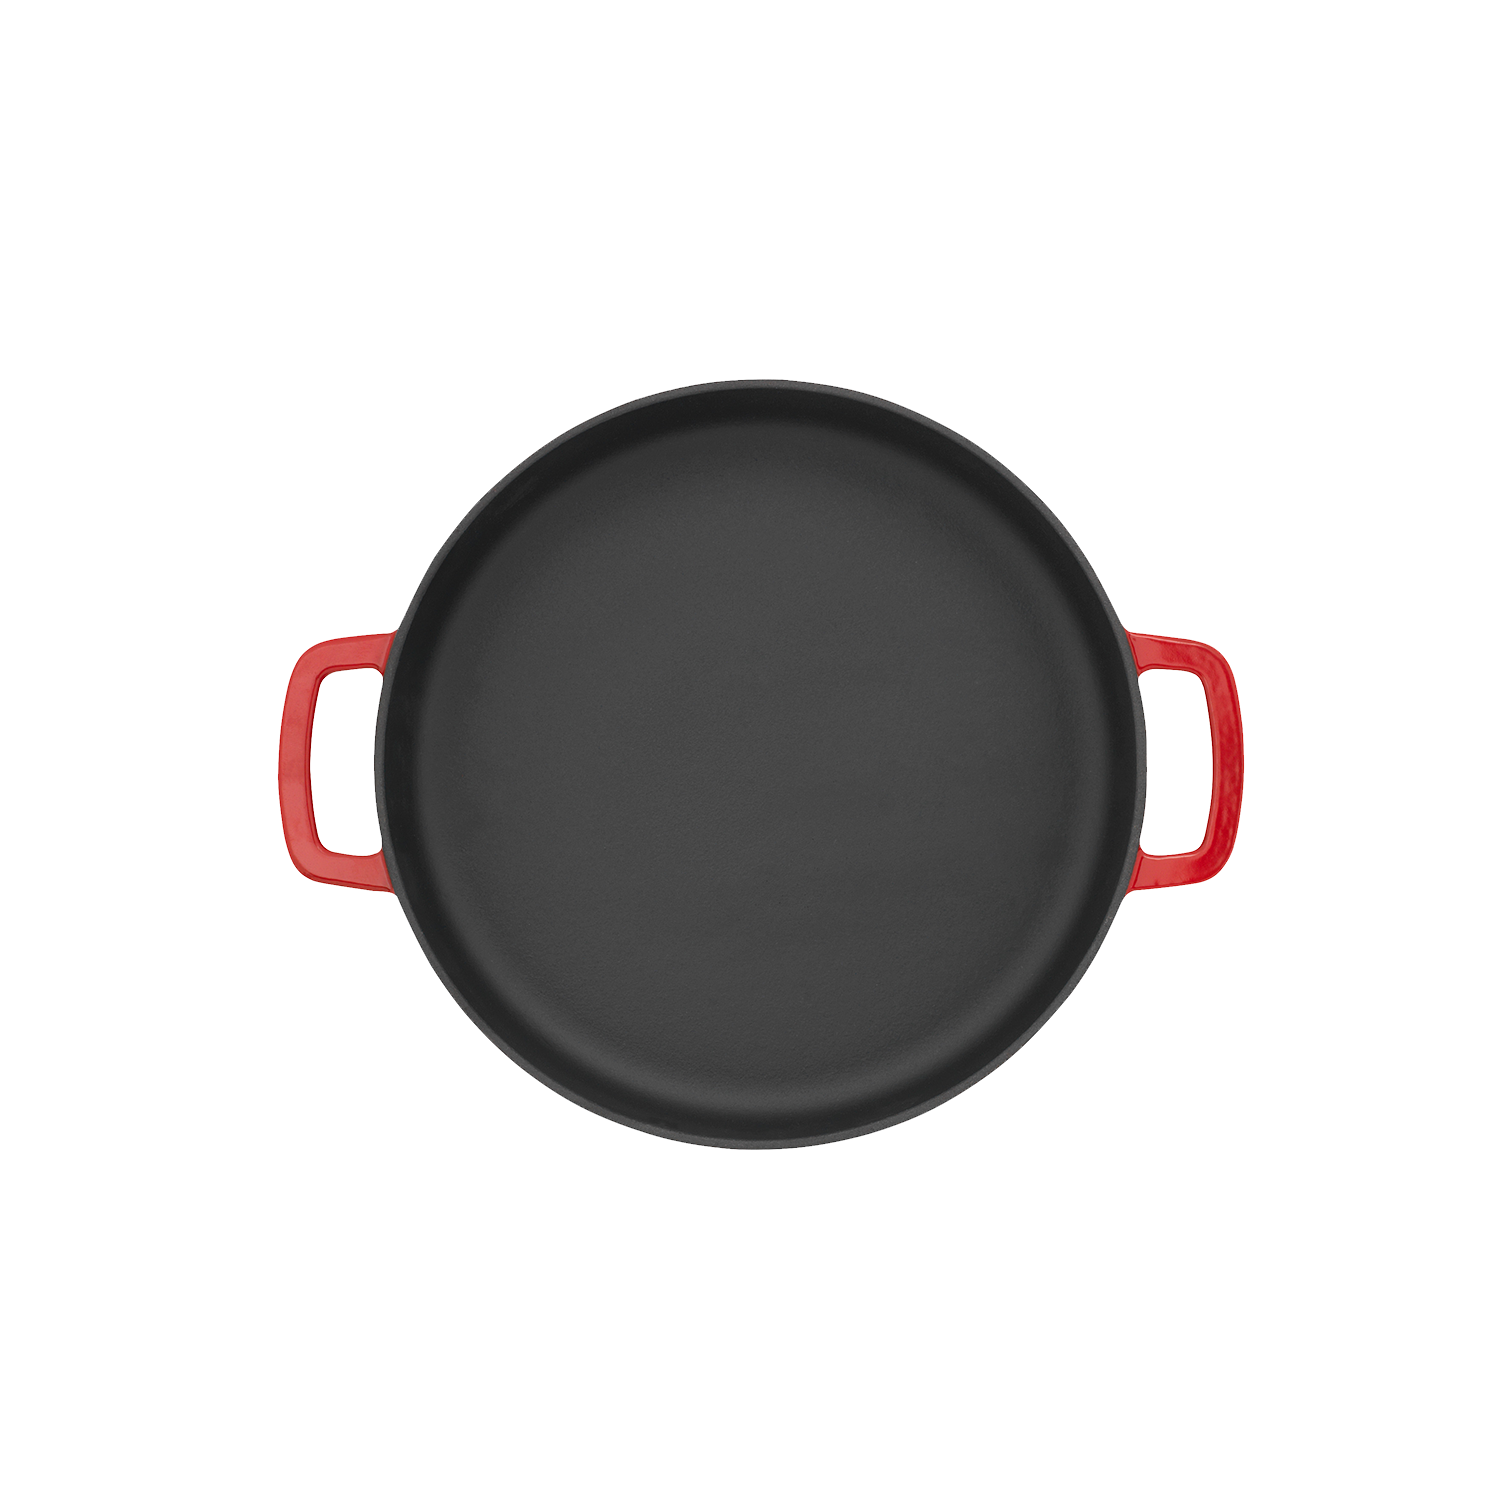 Sous-Chef double handle red 28 cm